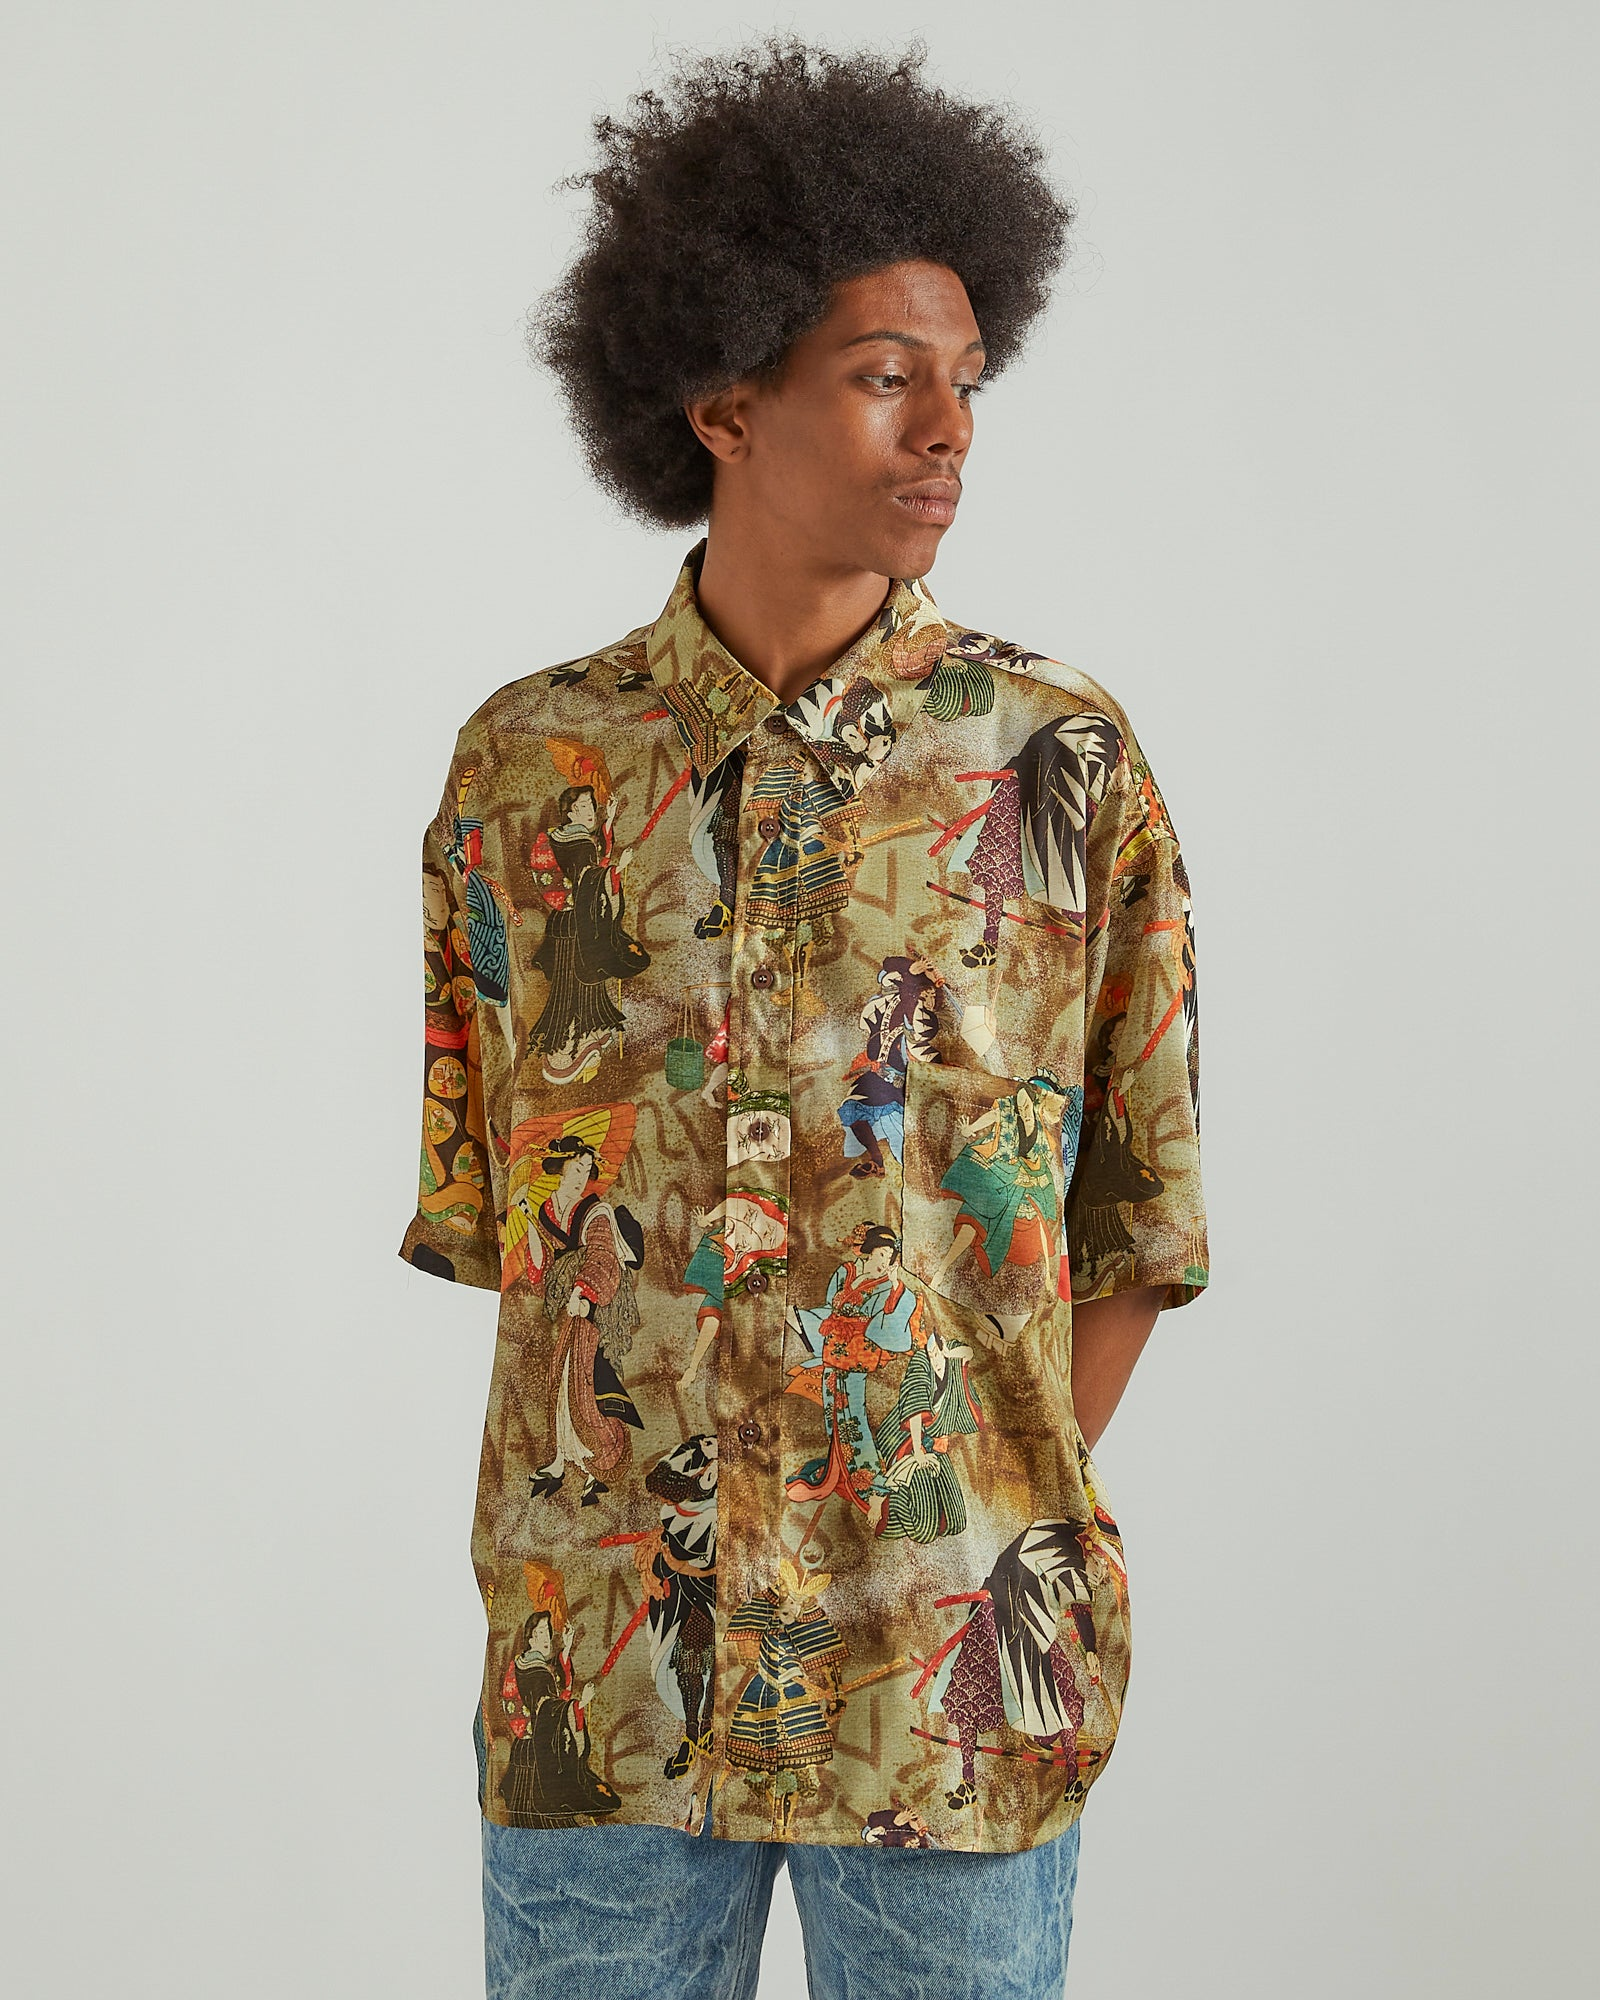 Duel S/S Shirt in Brown/Red